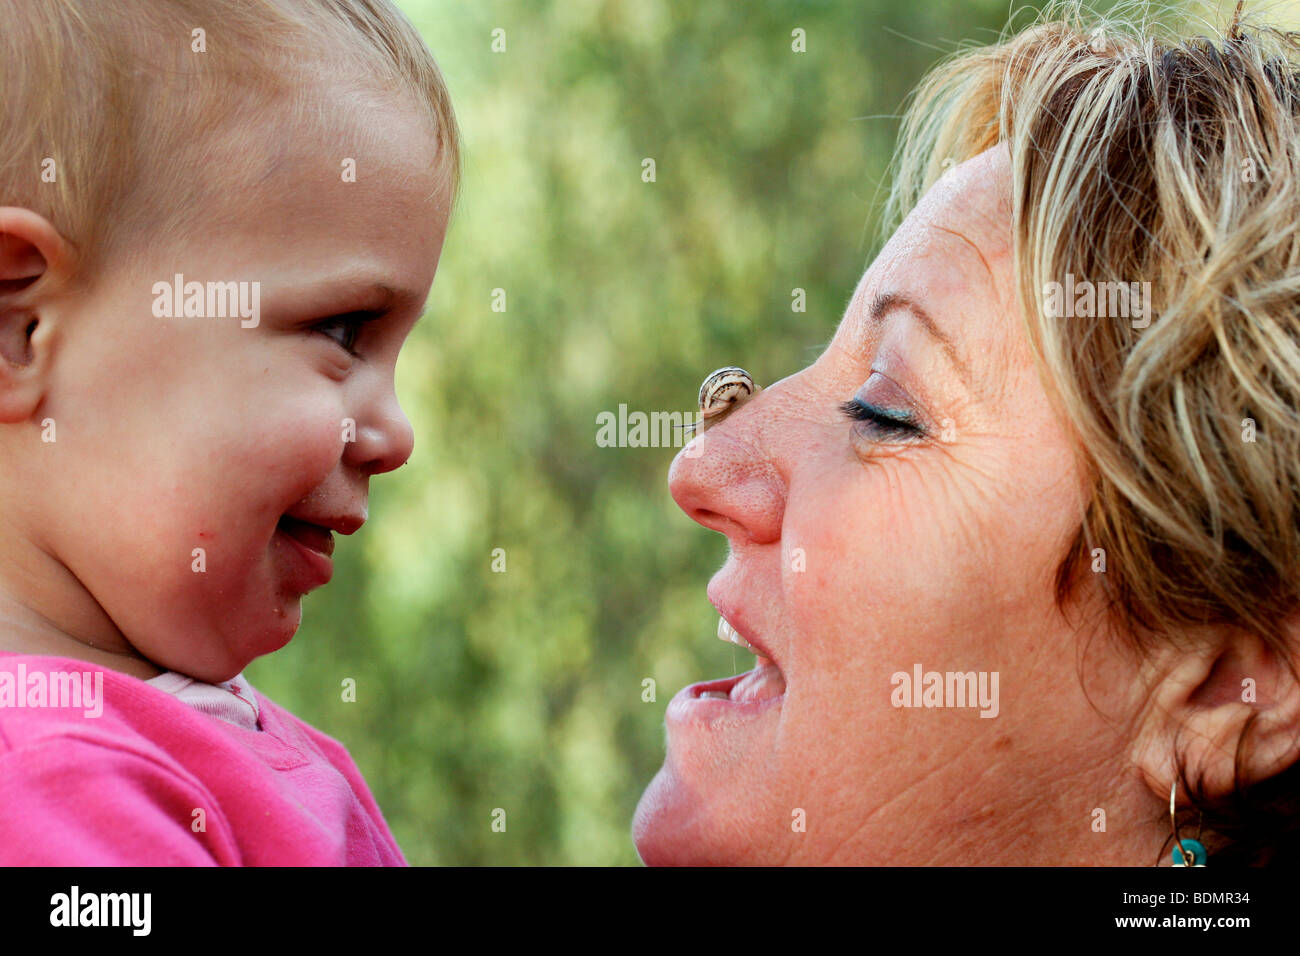 A toddler admires a snail with his mother - Stock Image